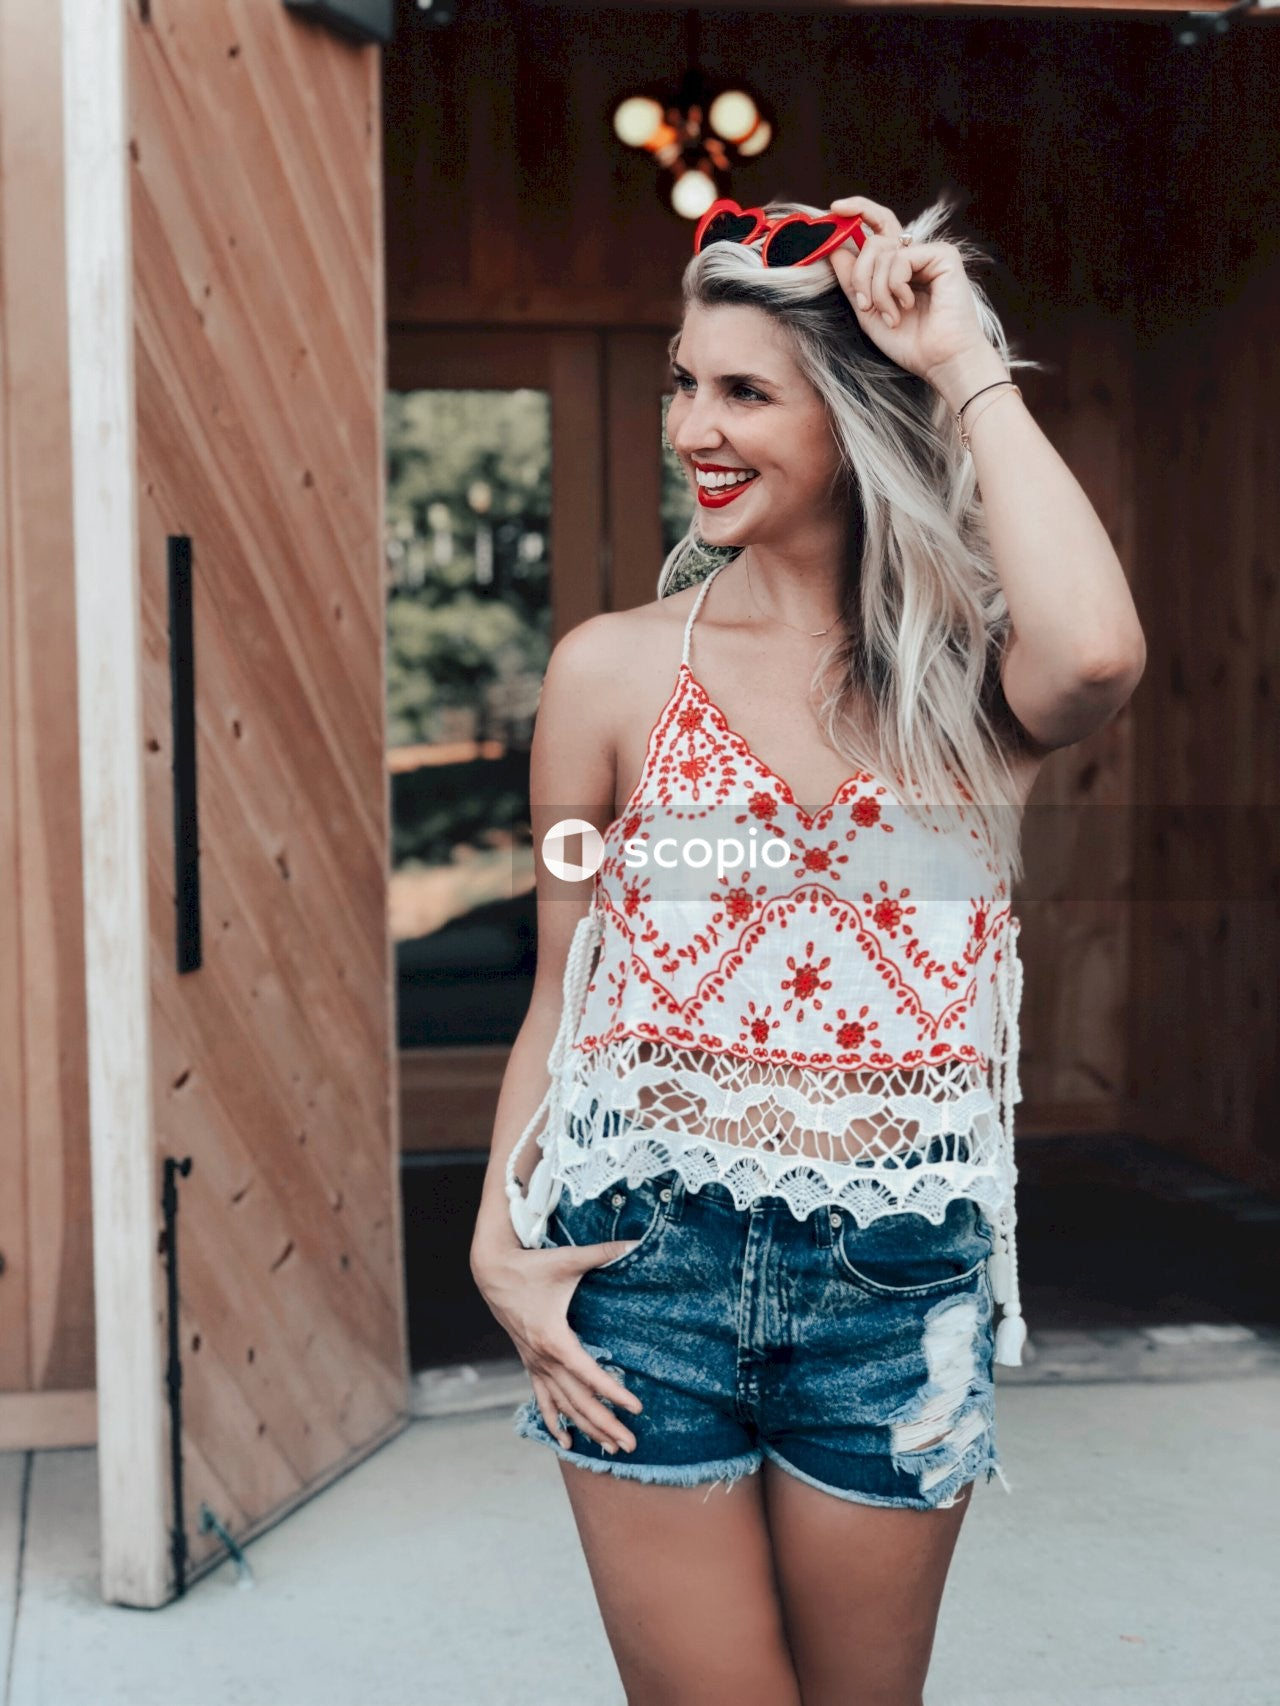 Woman in red and white floral tank top and blue denim shorts